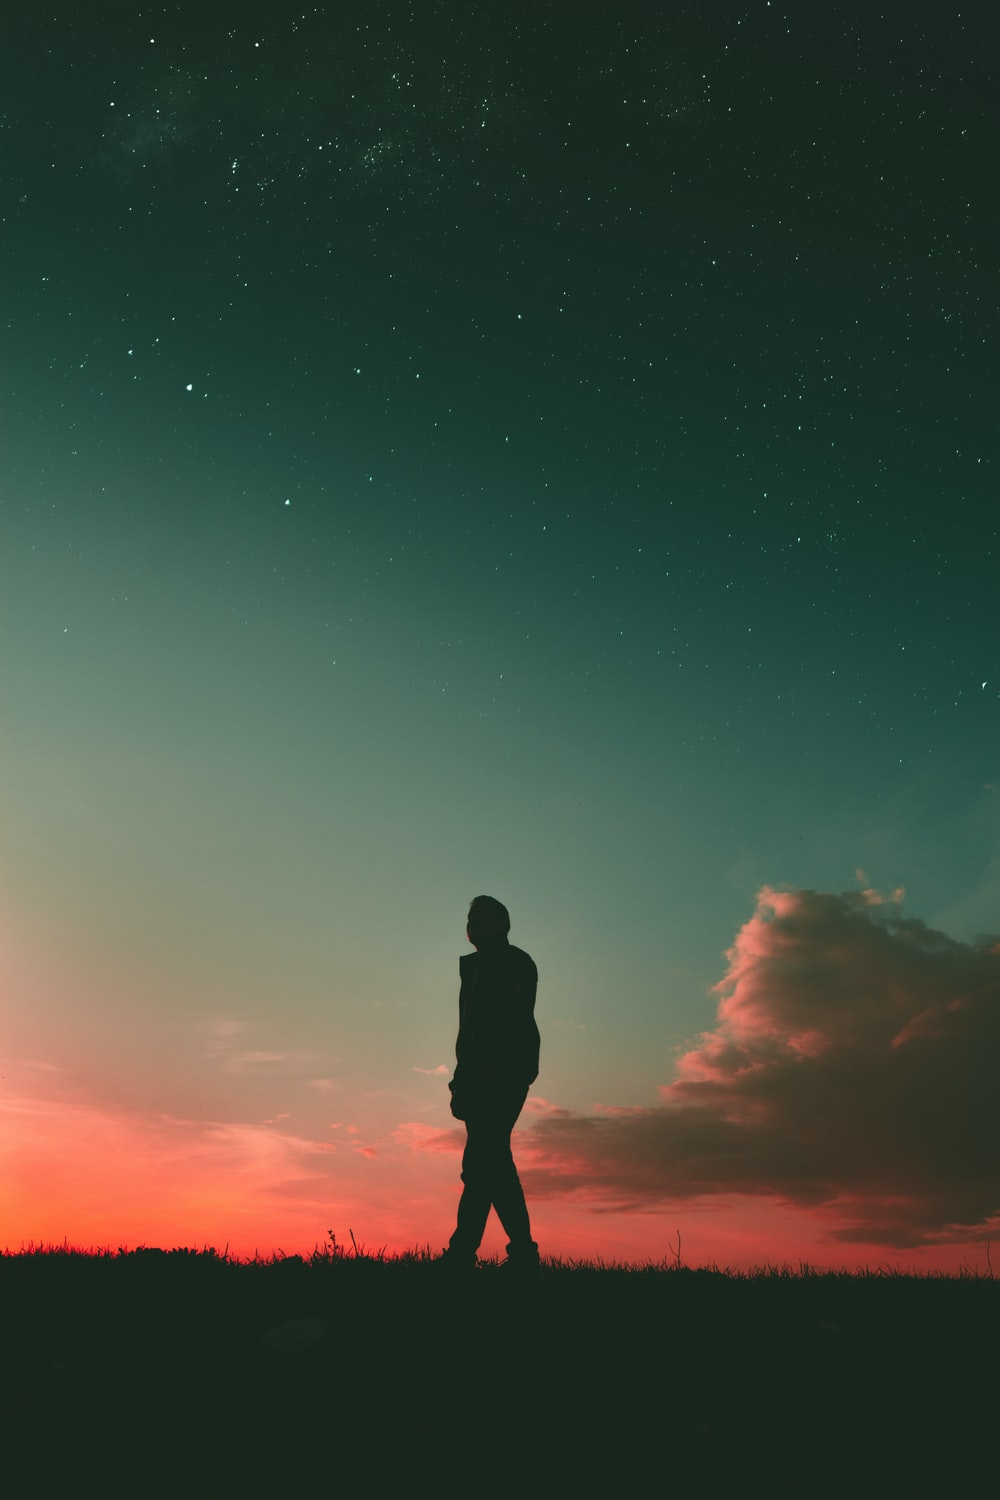 silhouette of man during sunset